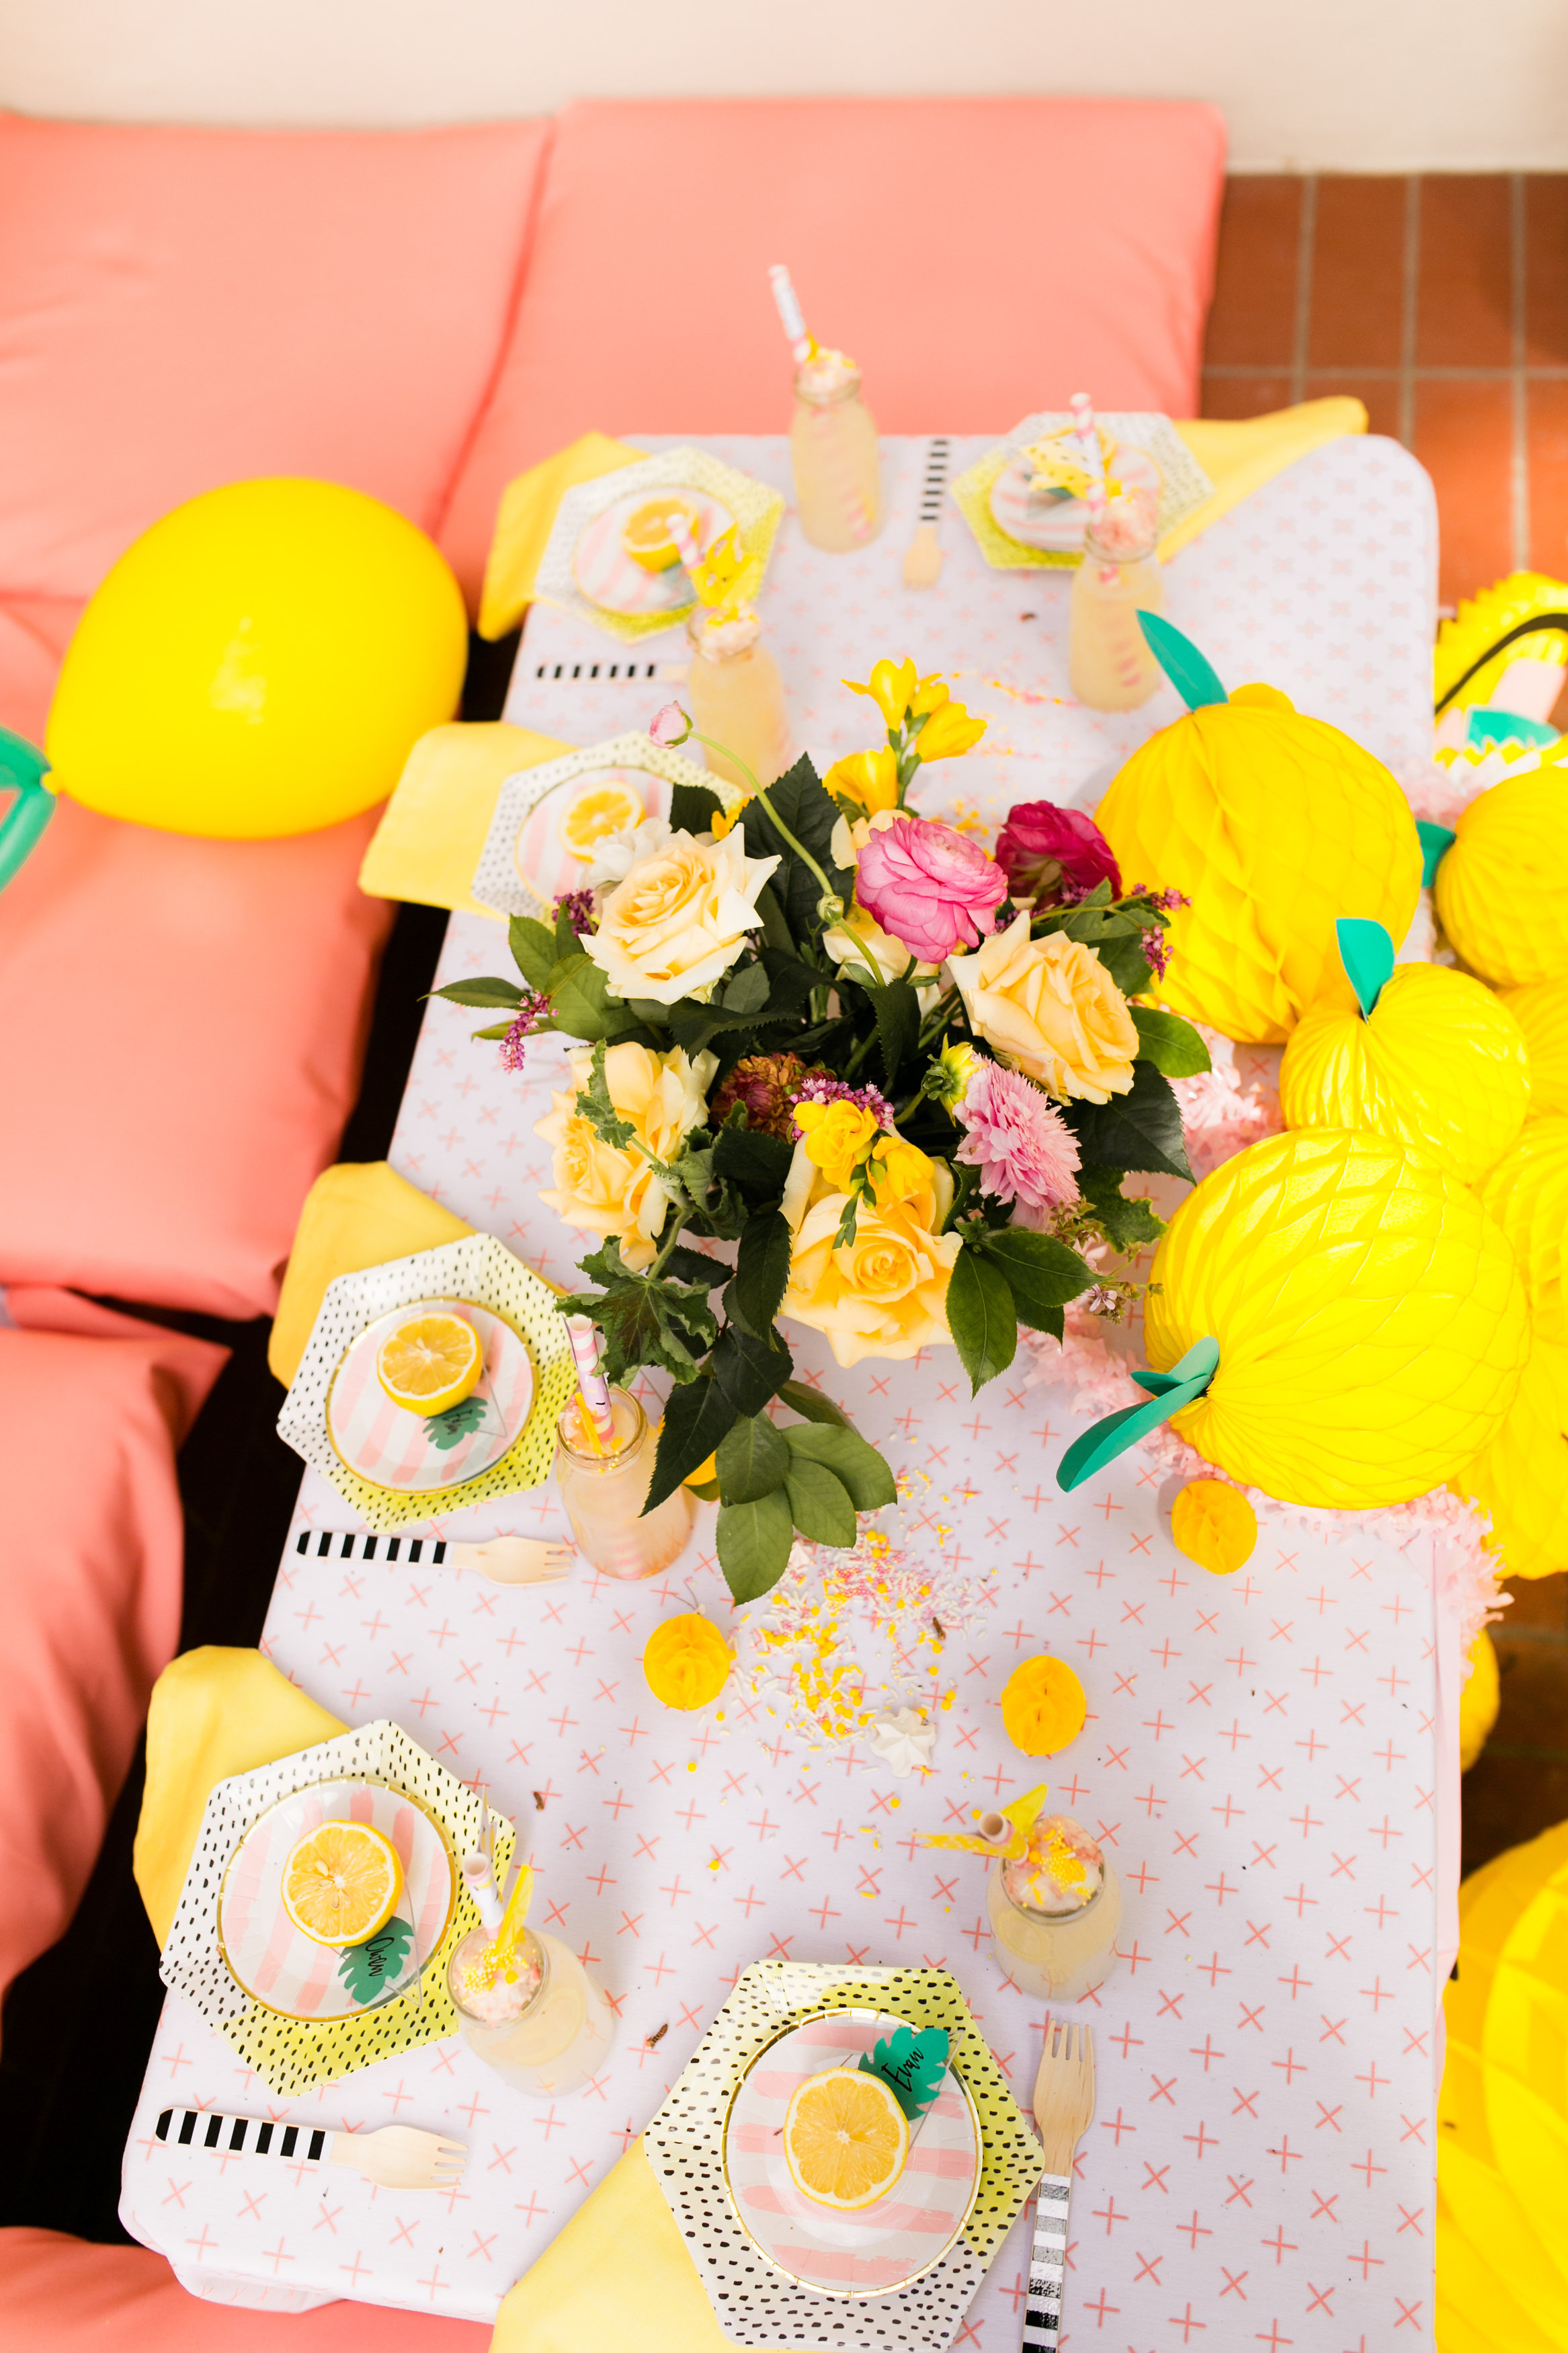 Lemonade Kids Birthday Party - Kids Table Decor and Florals by Blooms By Breesa Lee